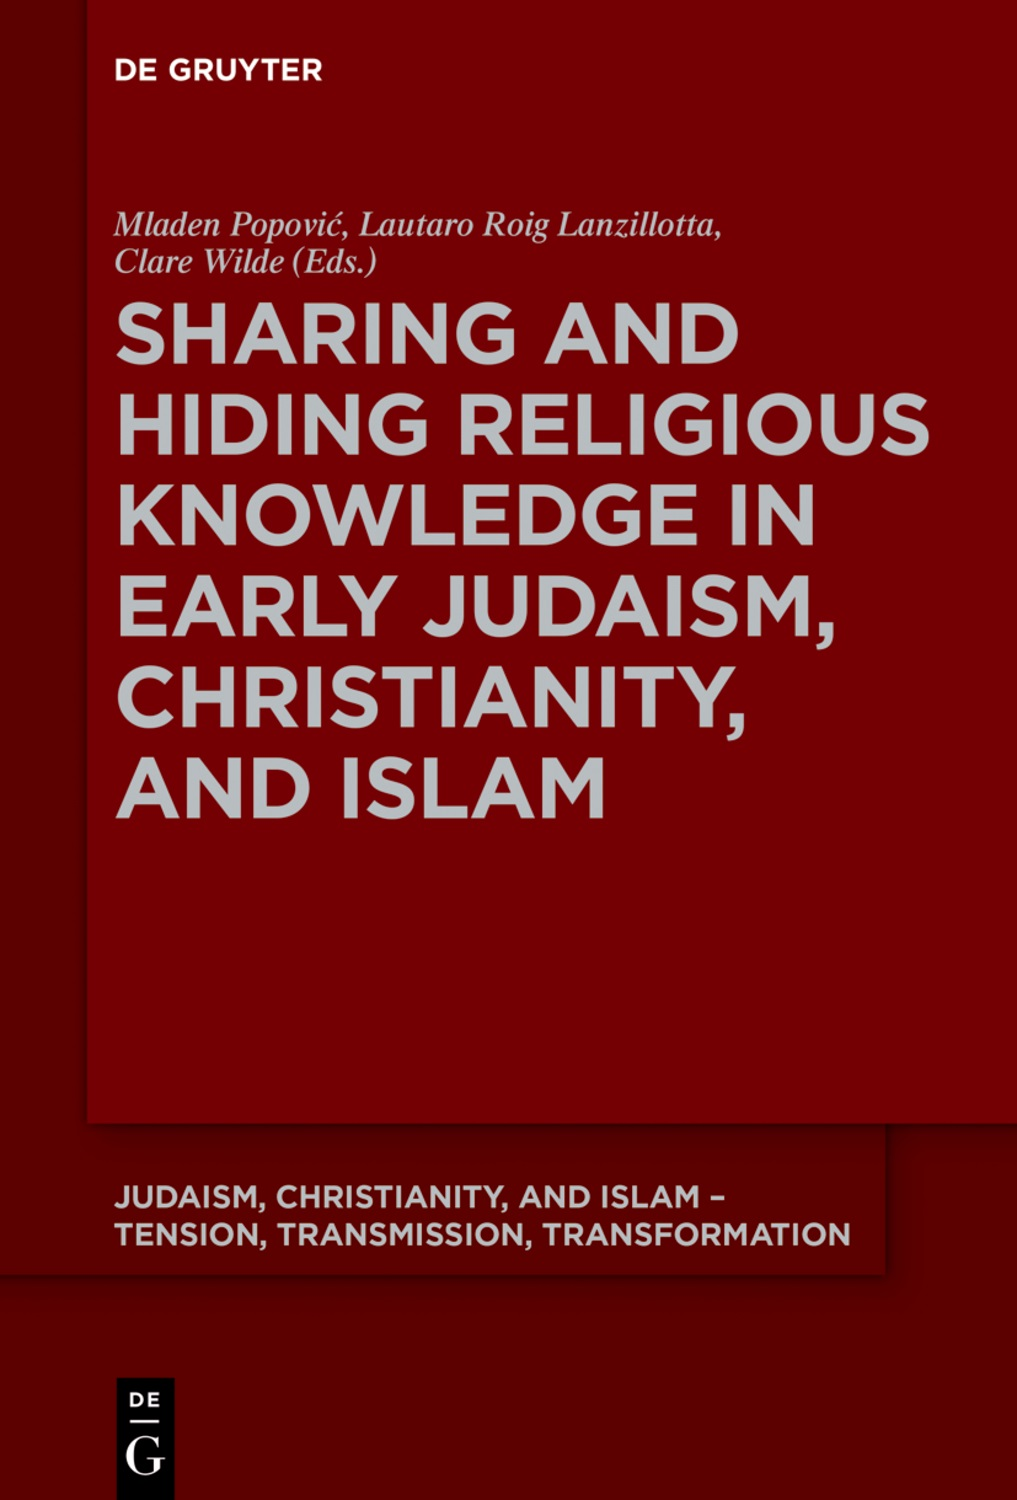 Sharing and Hiding Religious Knowledge in Early Judaism, Christianity, and Islam